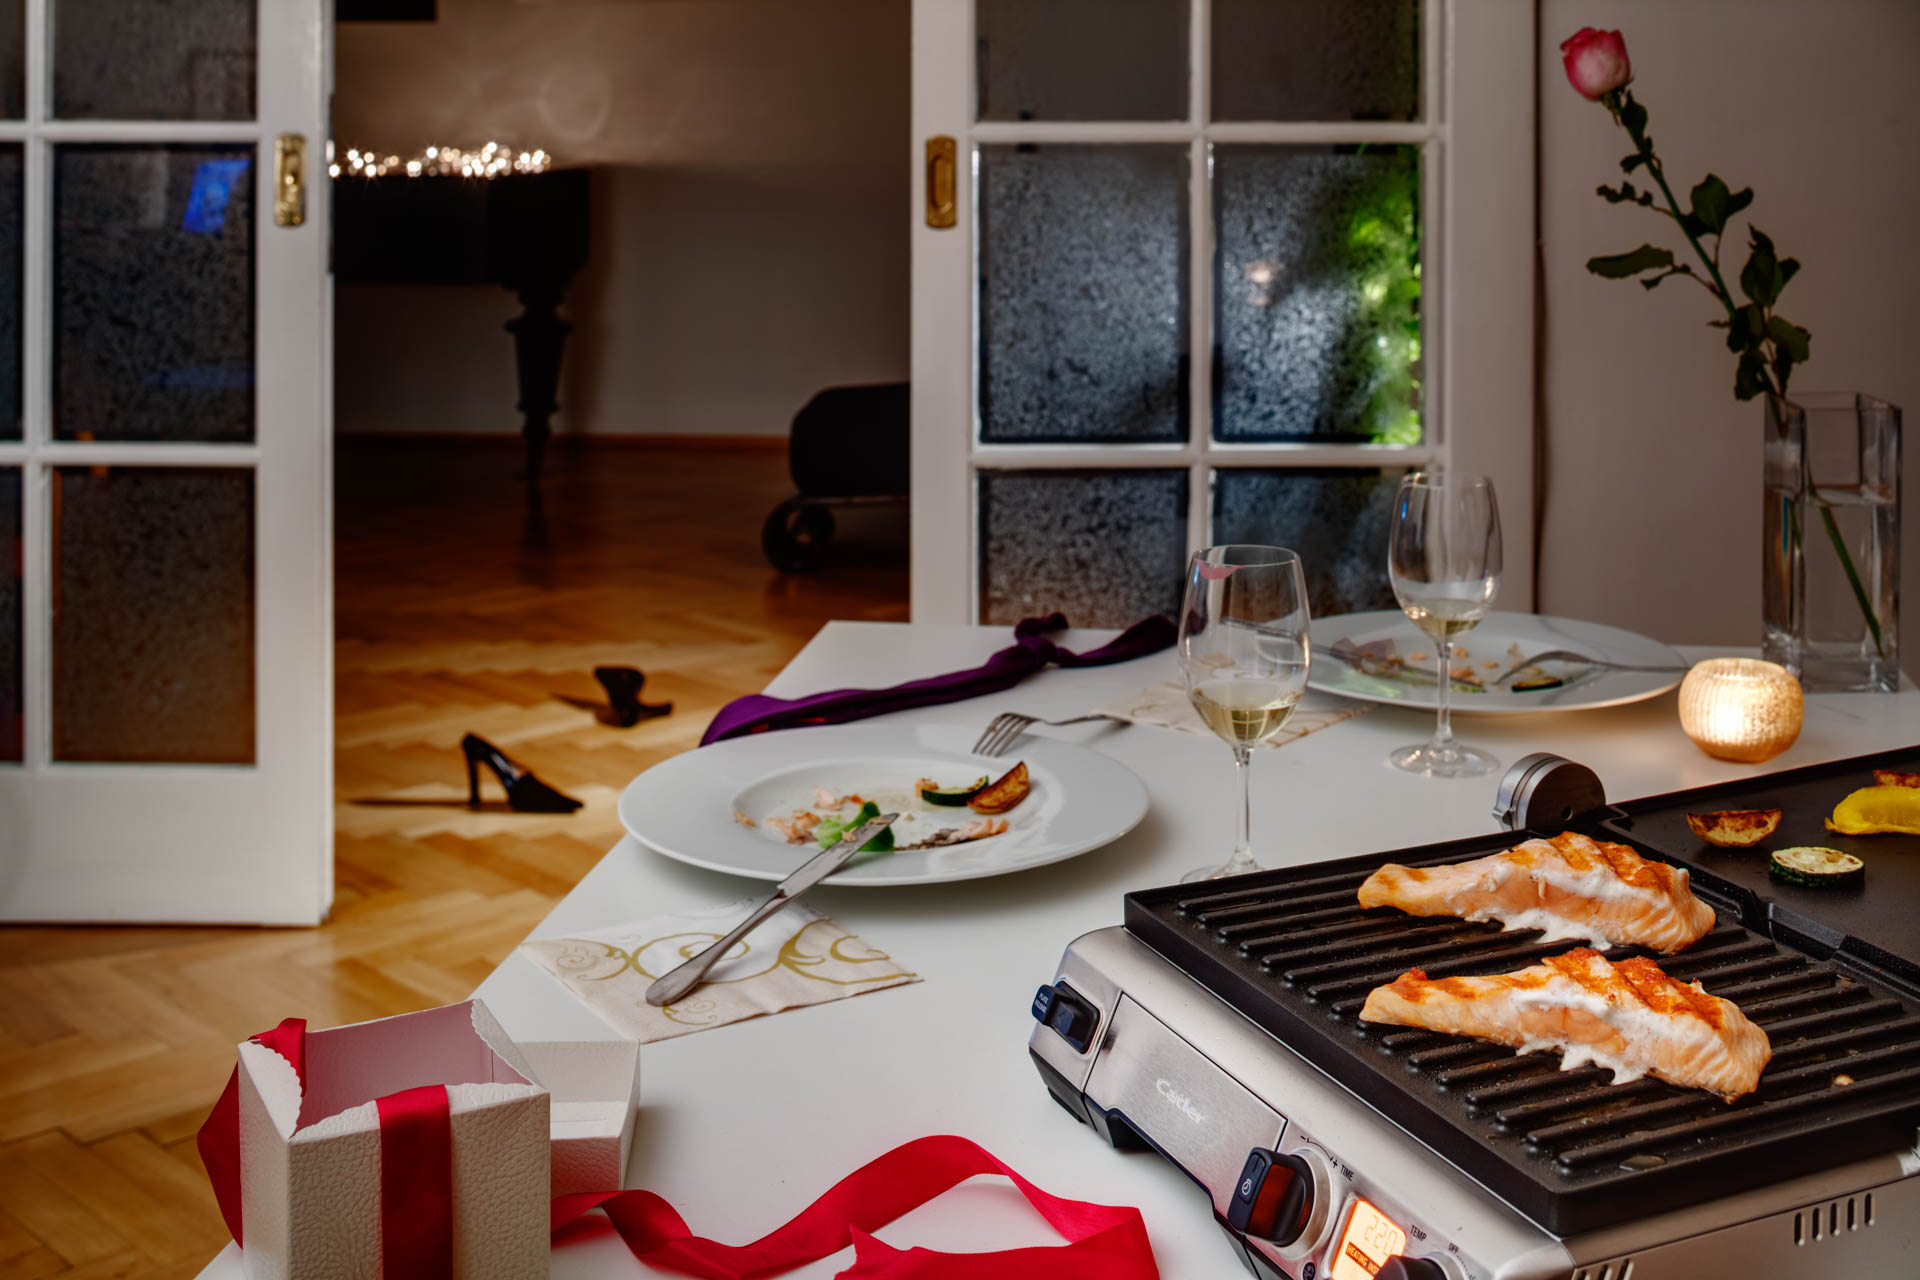 Grill with salmon in an private dinner setting